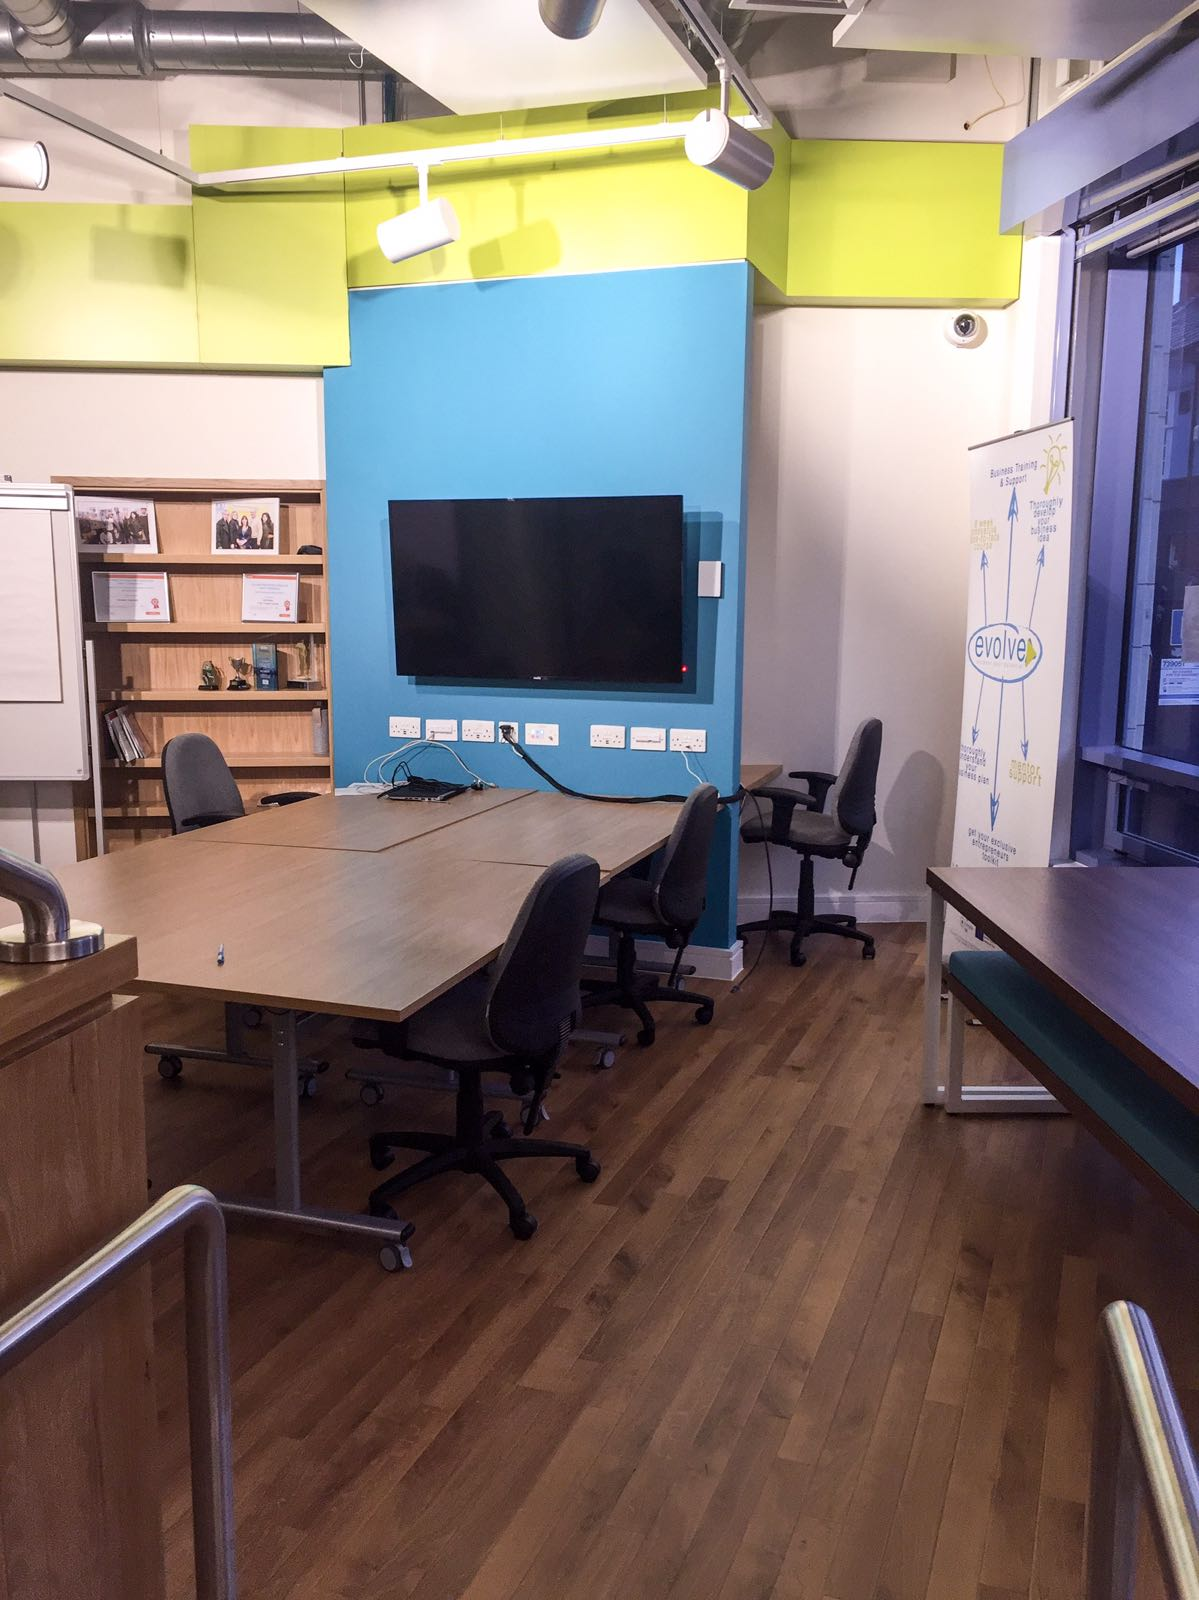 enterprise hub meeting room with table and chairs